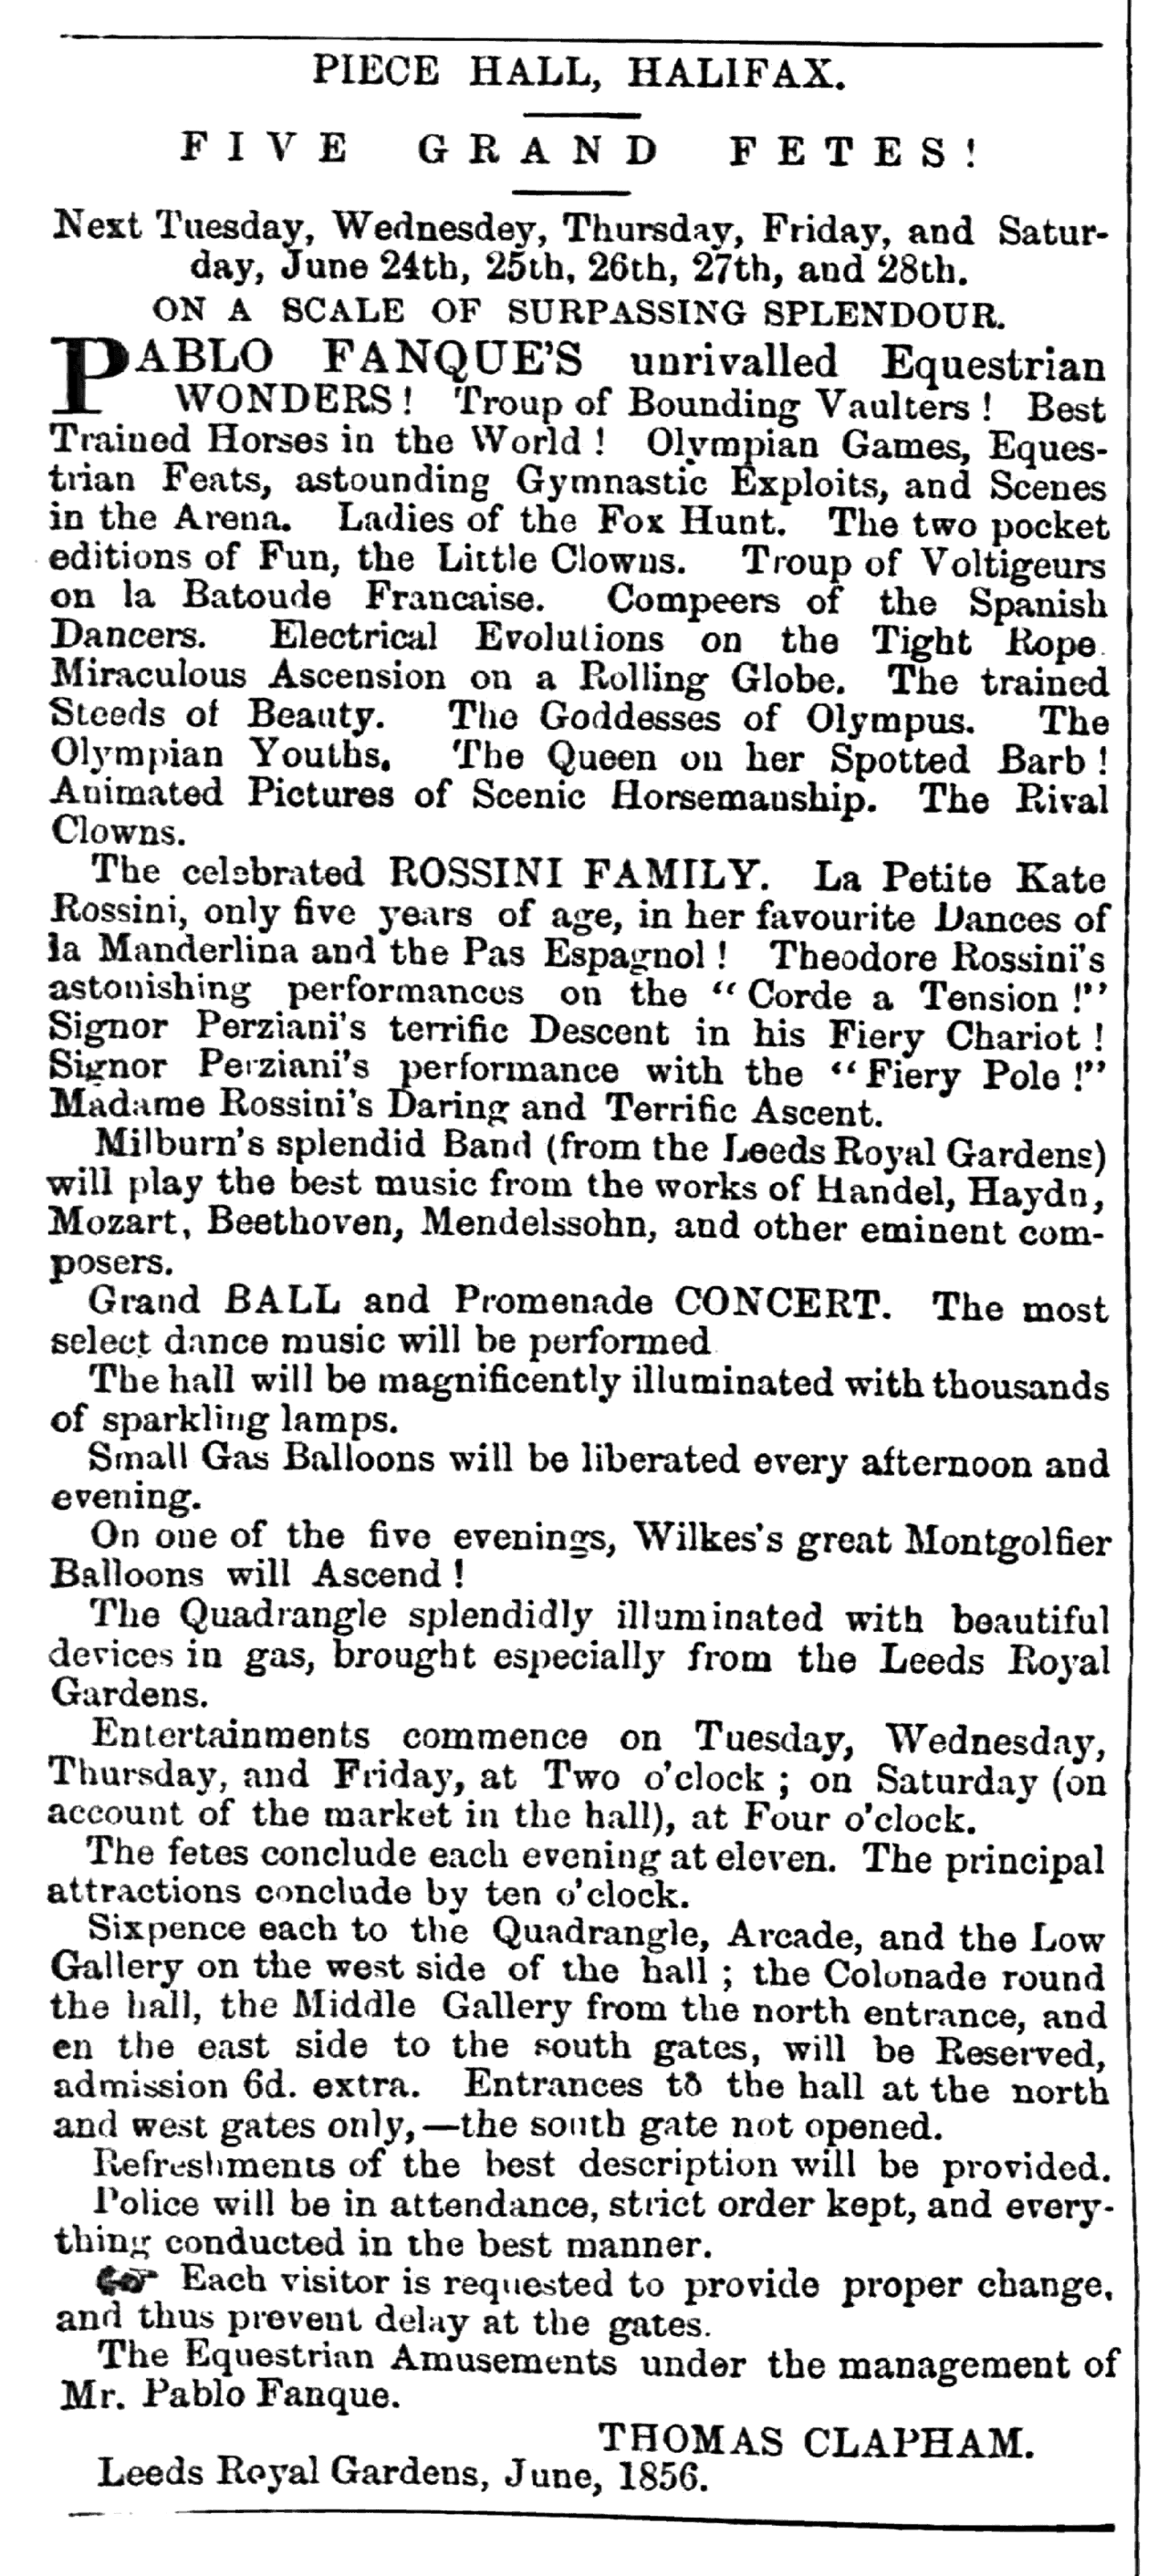 Huddersfield Chronicle 21 June 1856 - Public Notices, Pablo Fanque.png